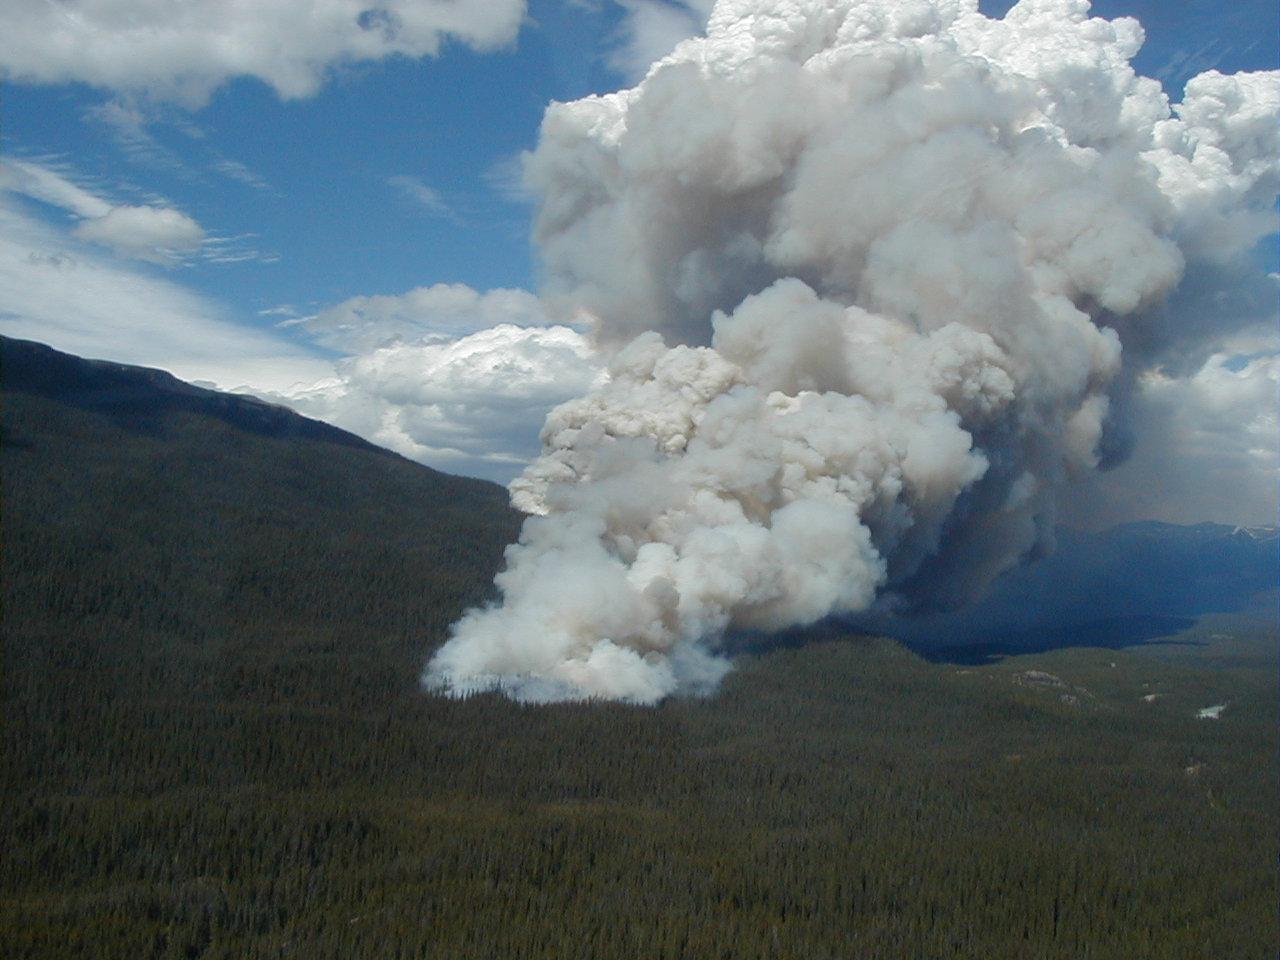 Aerial photograph of a forest fire and smoke plume